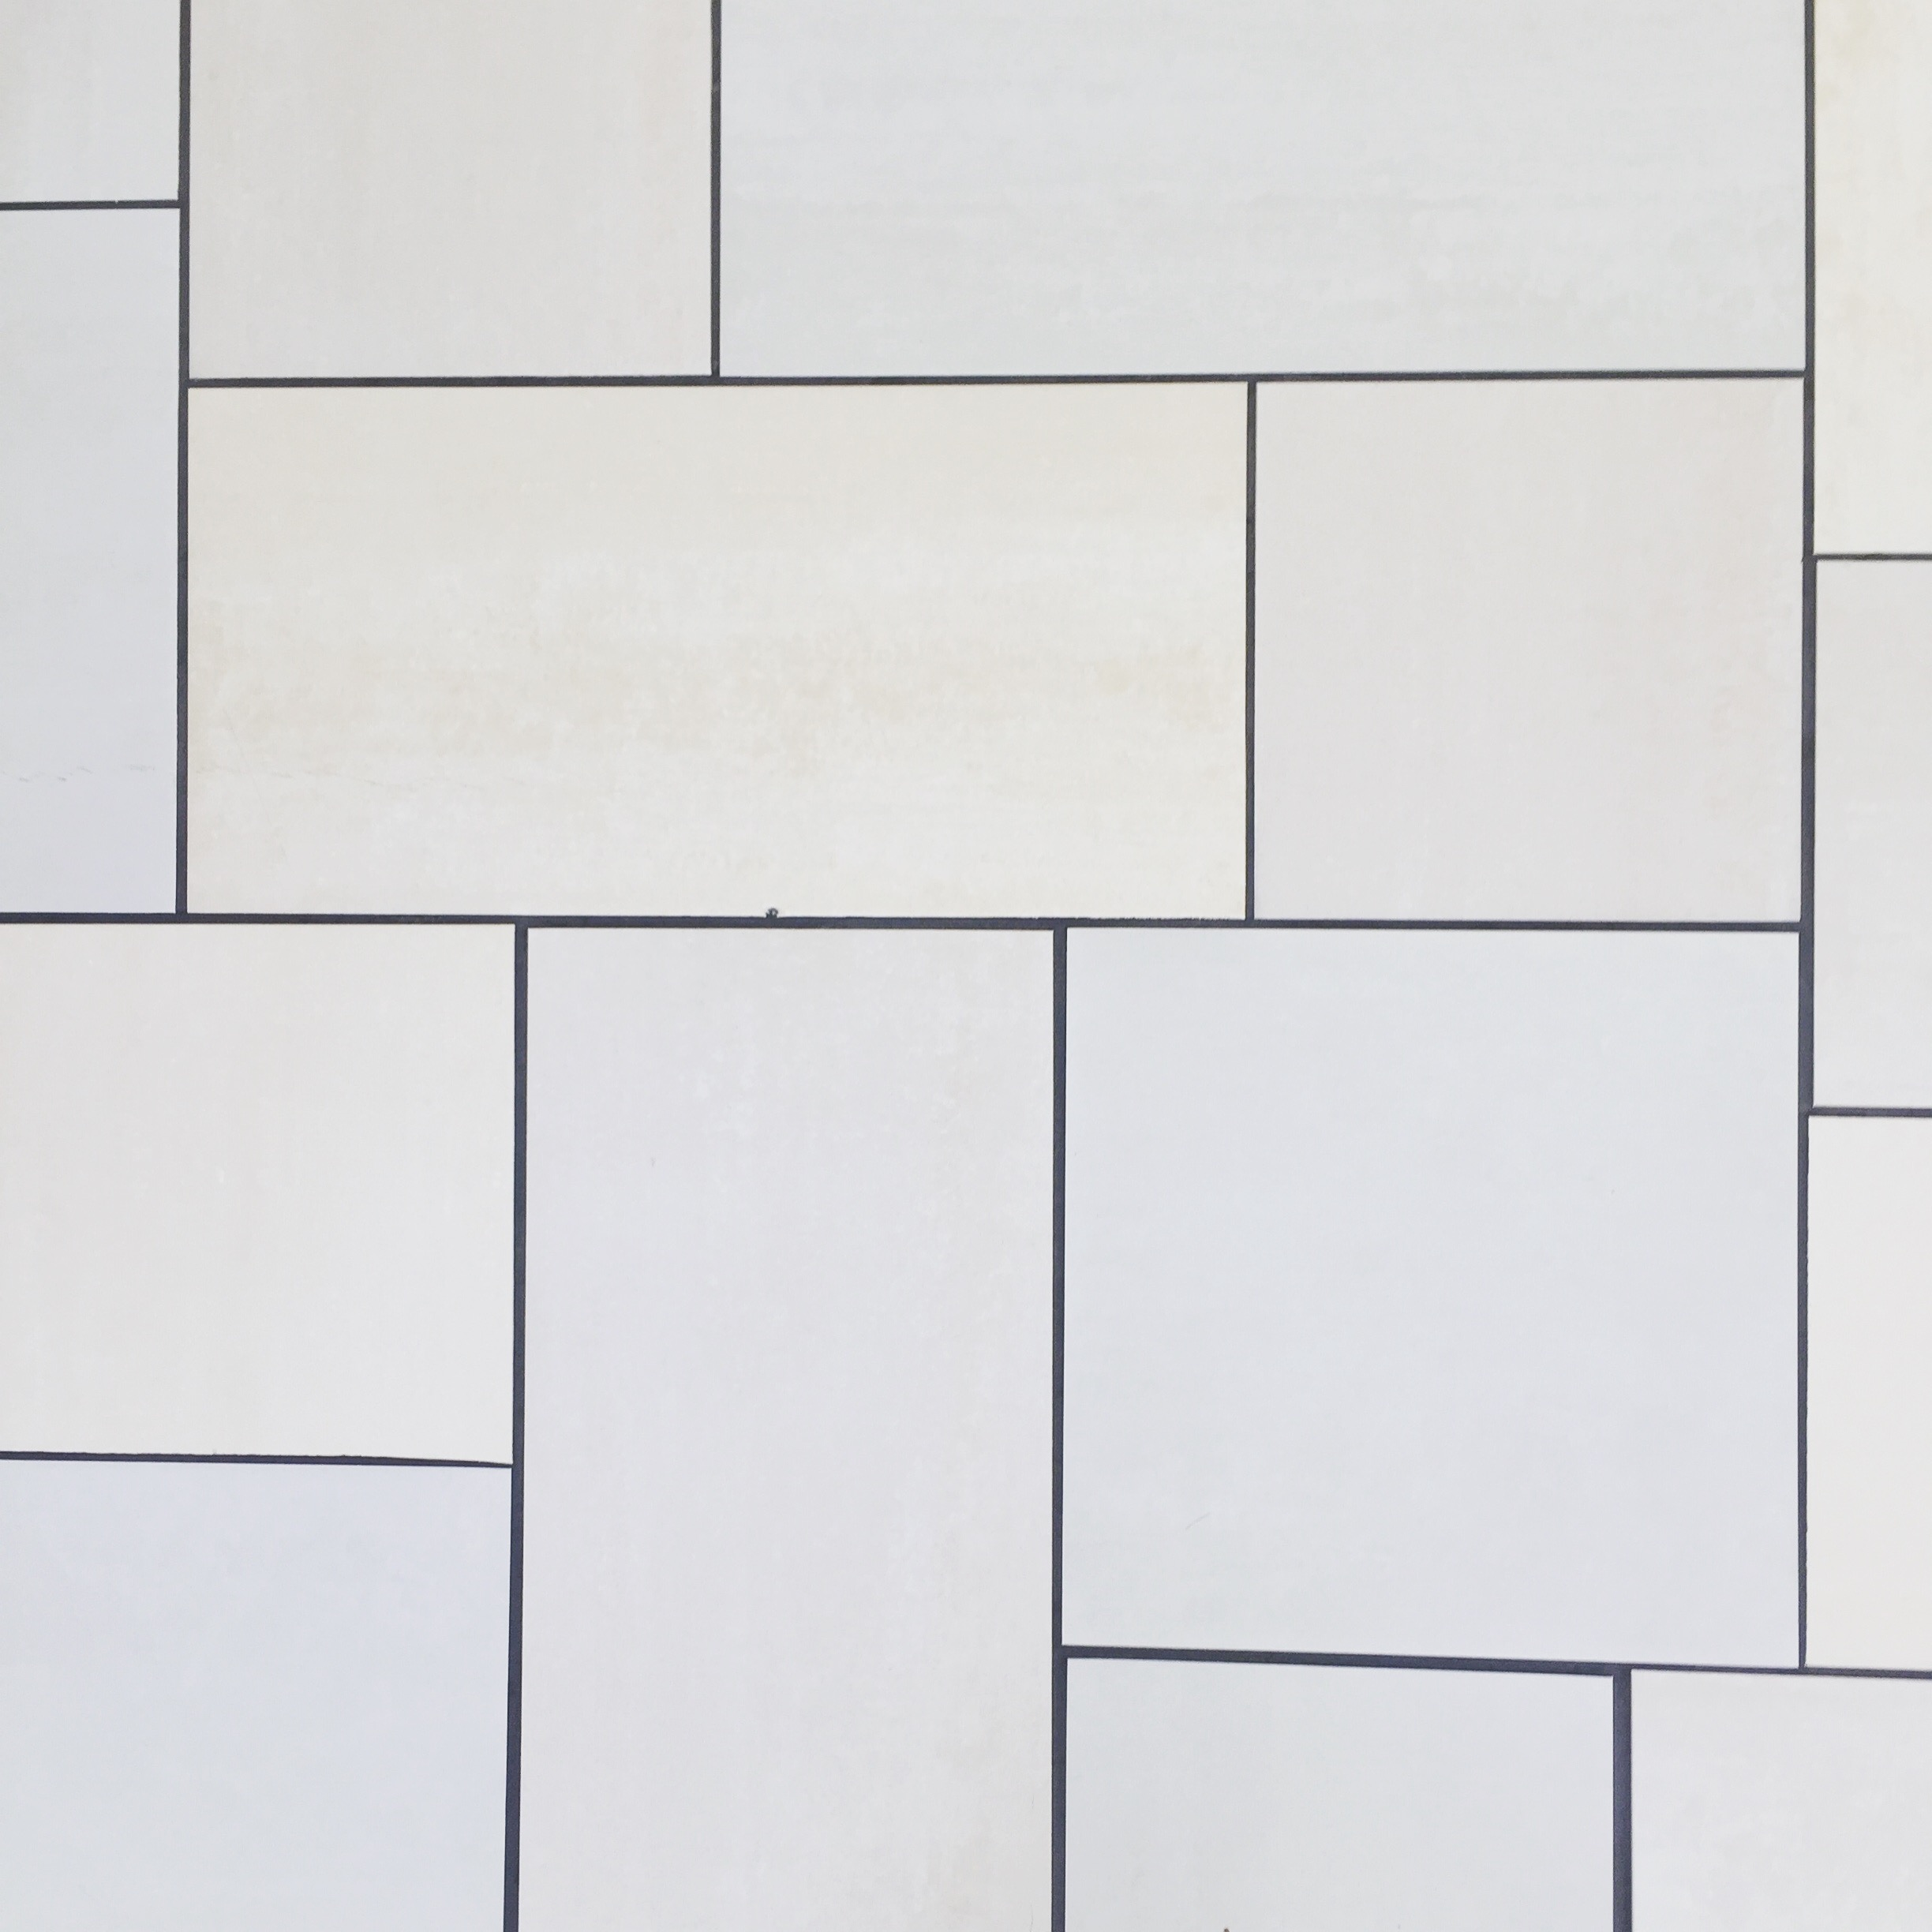 The tiles of Crossroads Mall after the stabbing.